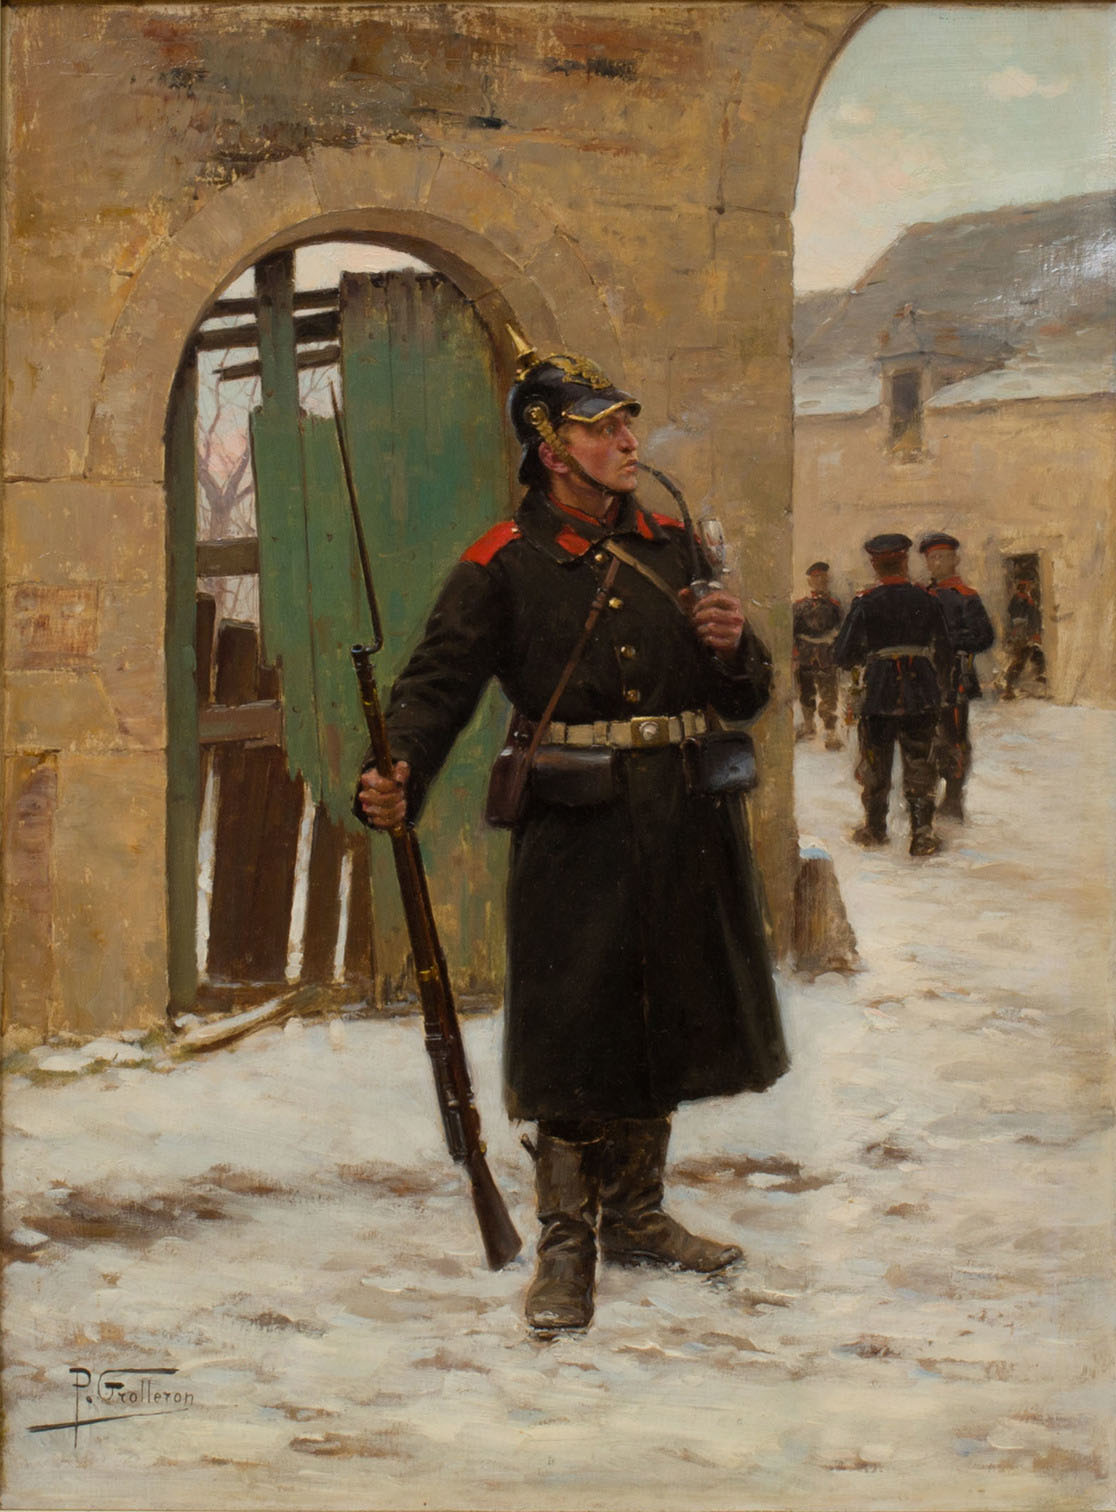 Paul Louis Narcisse Grolleron (1848-1901) -  Soldier and Musket